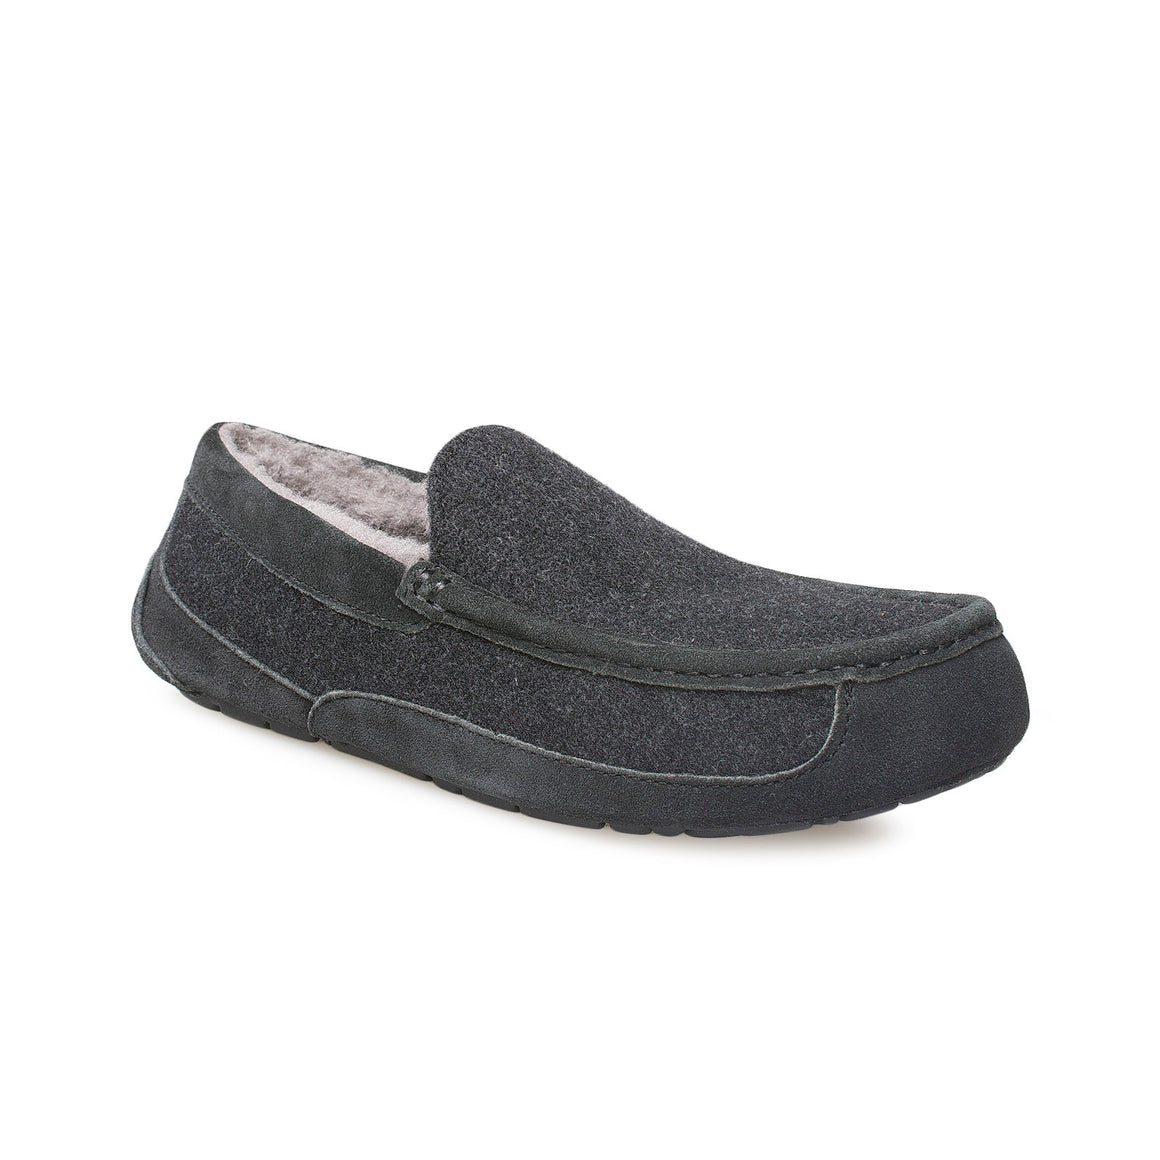 UGG Ascot Wool Black TNL Slippers -  Men's